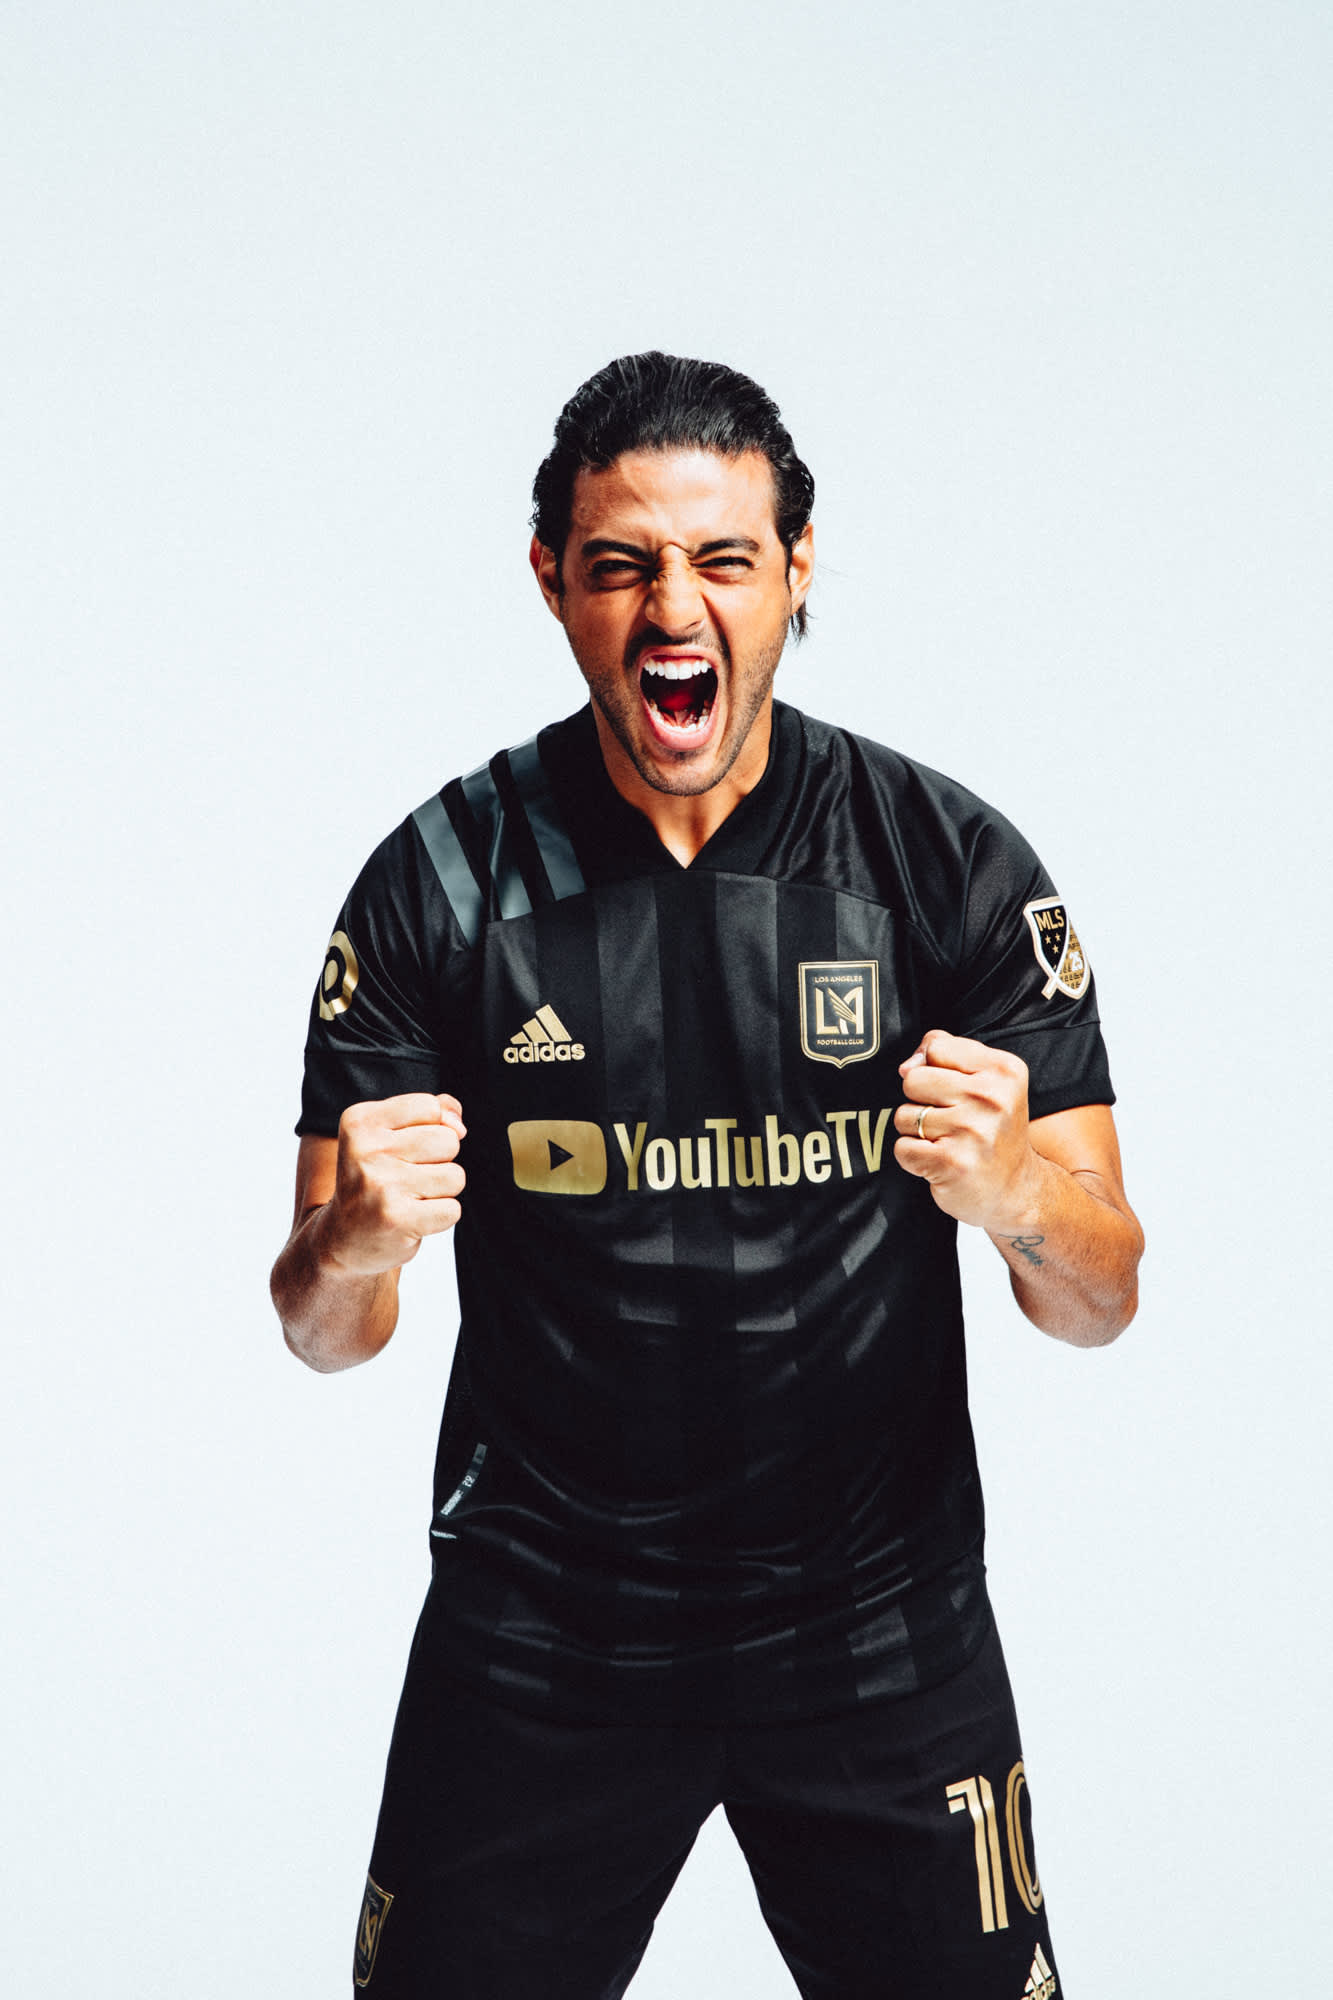 Major League Soccer Brand Shoot